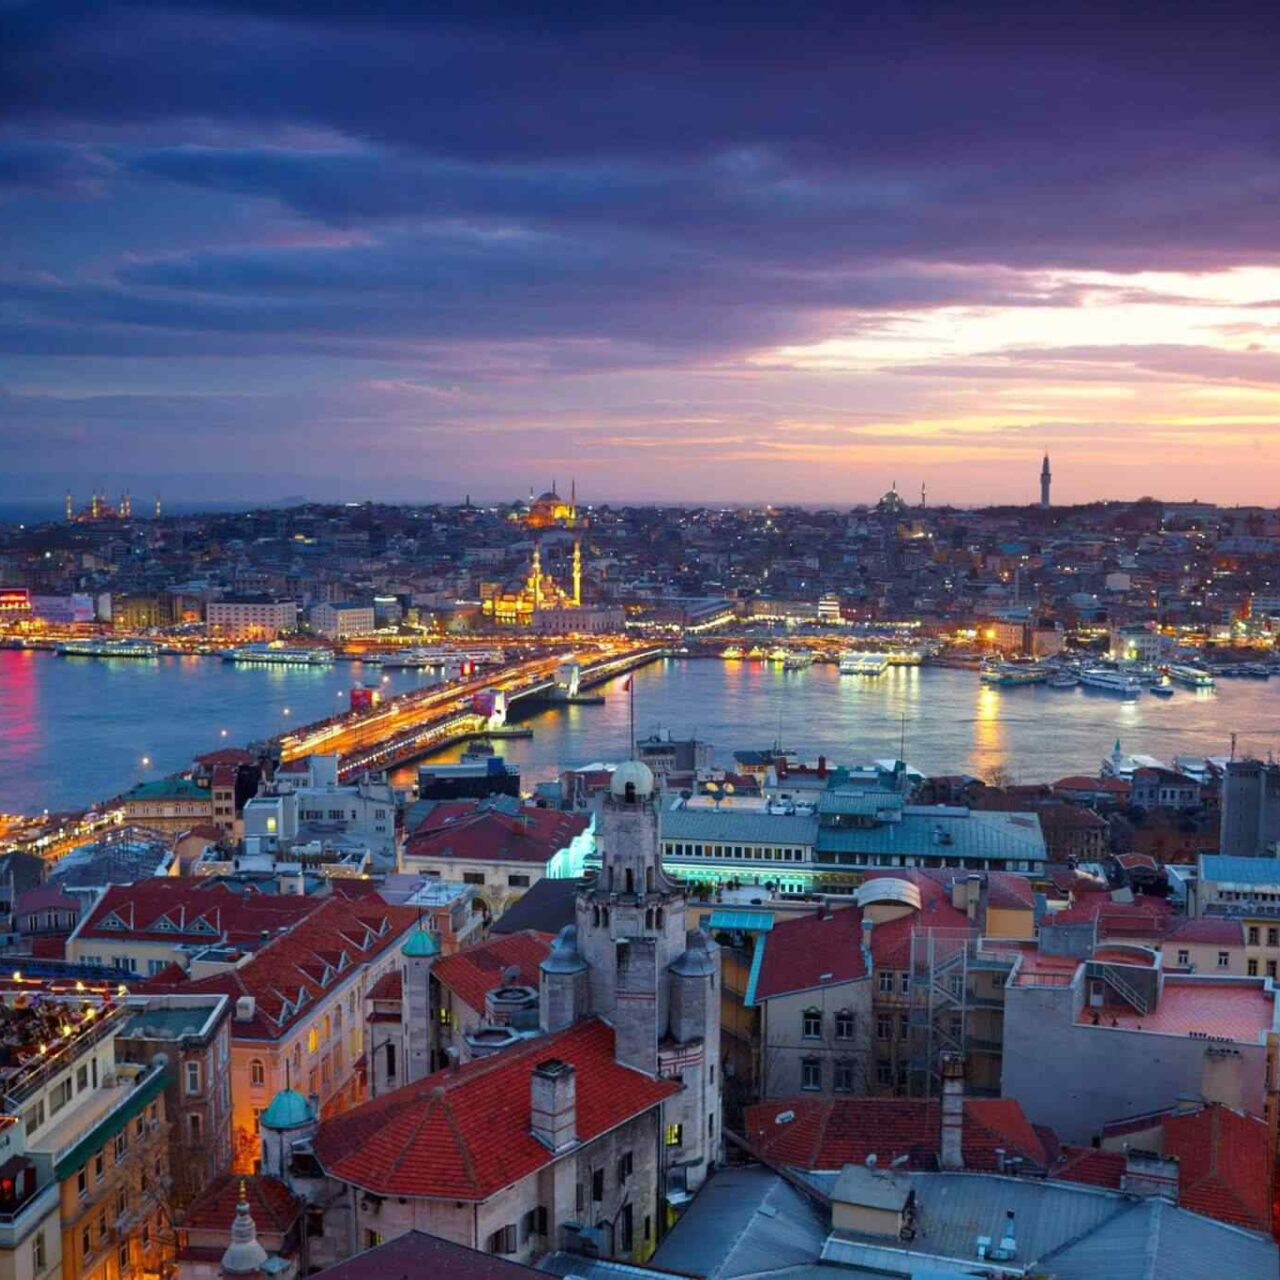 https://www.egyptravel4you.com/wp-content/uploads/2018/09/destination-istanbul-01-1280x1280.jpg